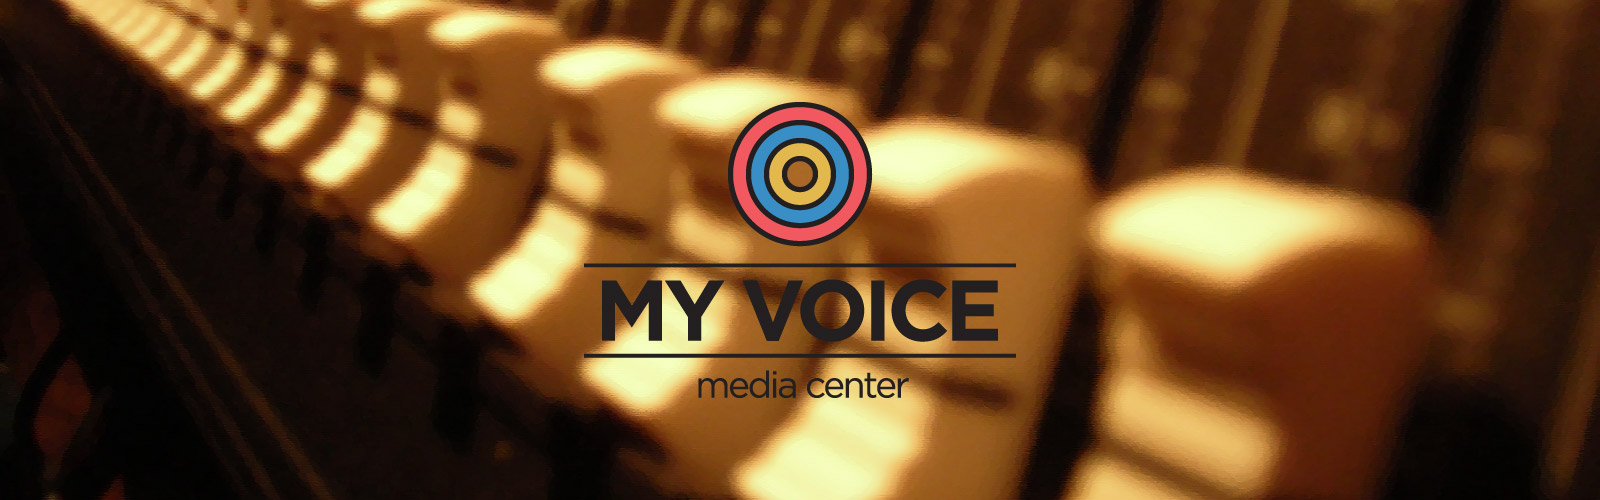 My Voice Media Center Graphic